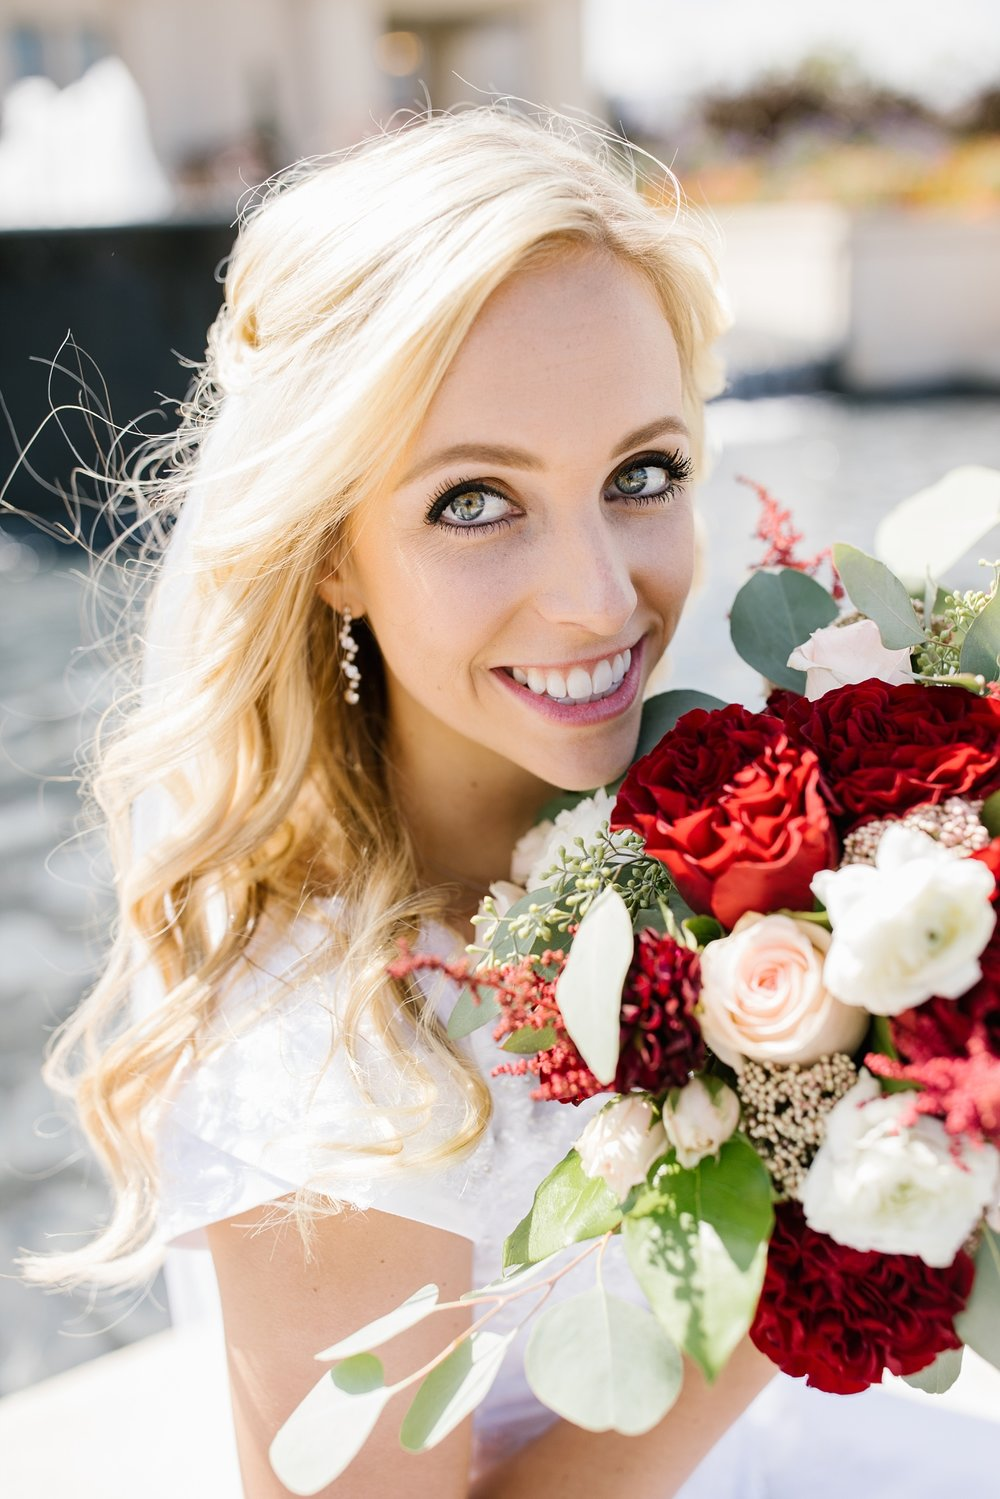 HannahChaseWedding-175_Lizzie-B-Imagery-Utah-Wedding-Photographer-Bridal-Photography-Payson-Utah-Temple-Clarion-Gardens-Catering-and-Events-Center.jpg